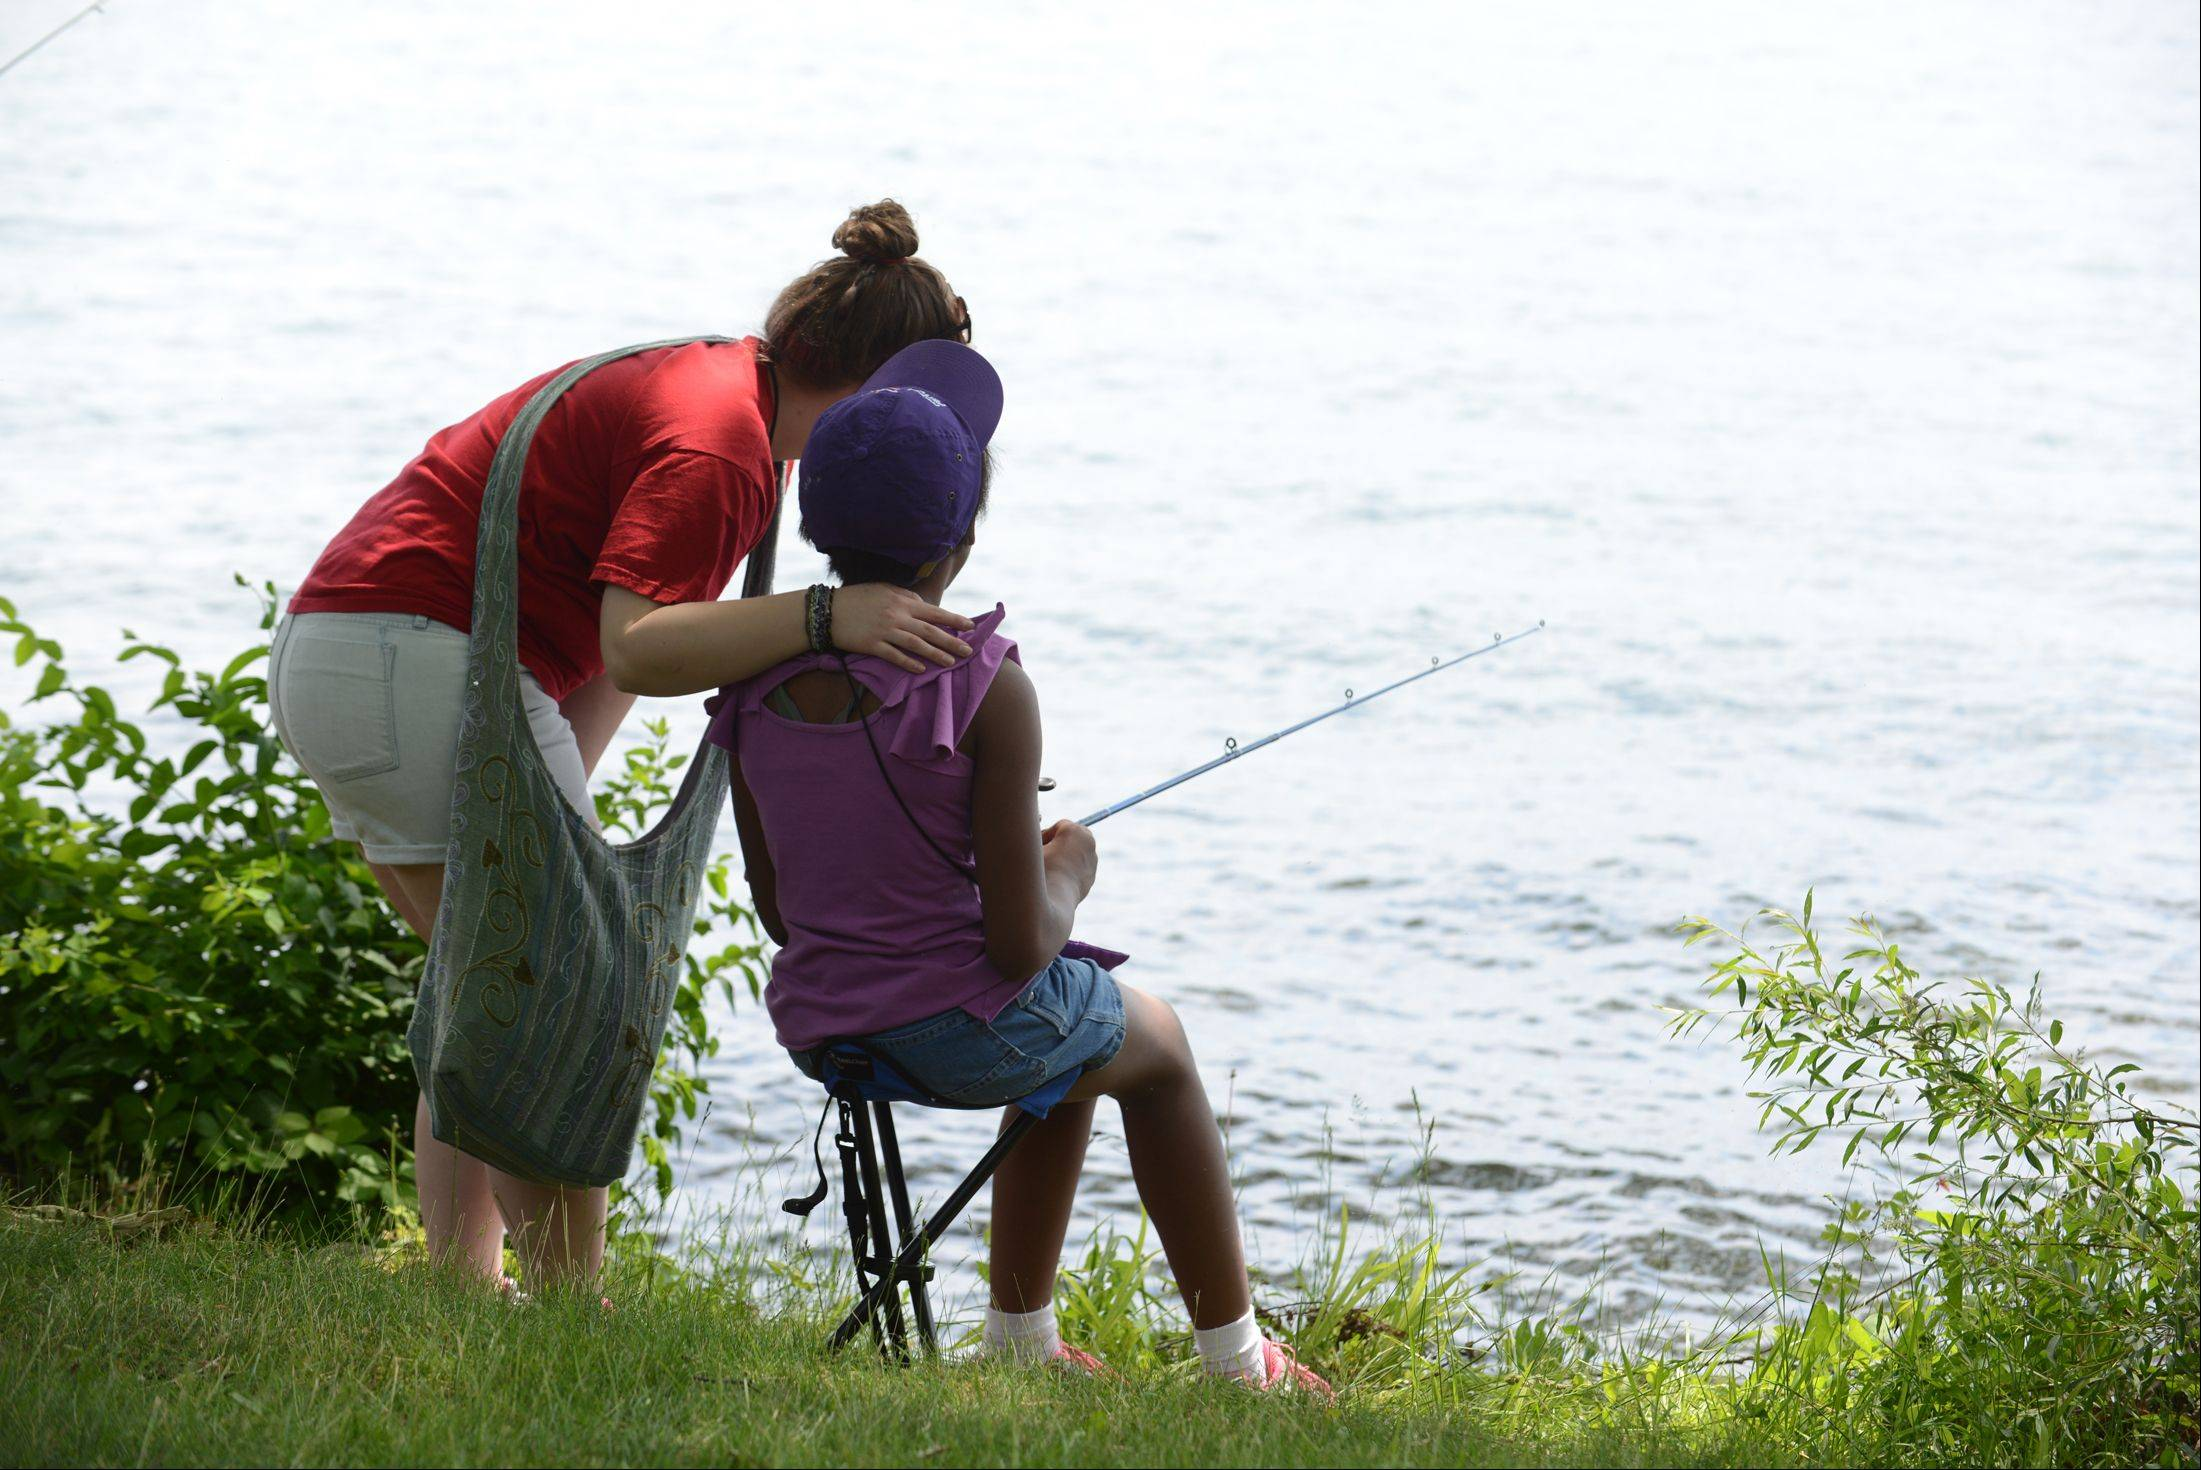 Royal Family Kids Camp counselor Amber Blaskoski of St. Charles fishes with a camper.